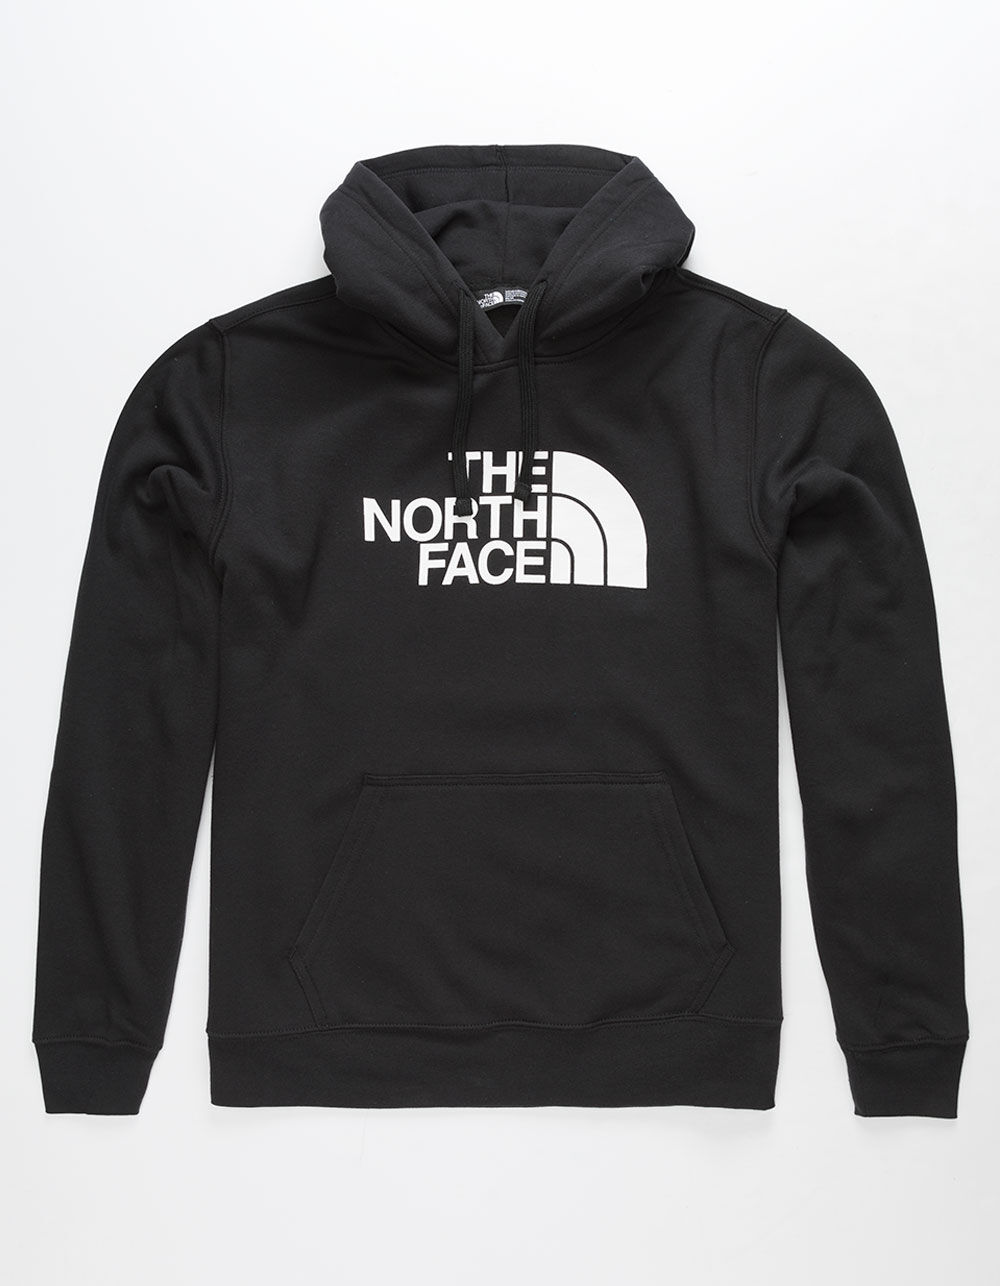 THE NORTH FACE Half Dome Black Hoodie